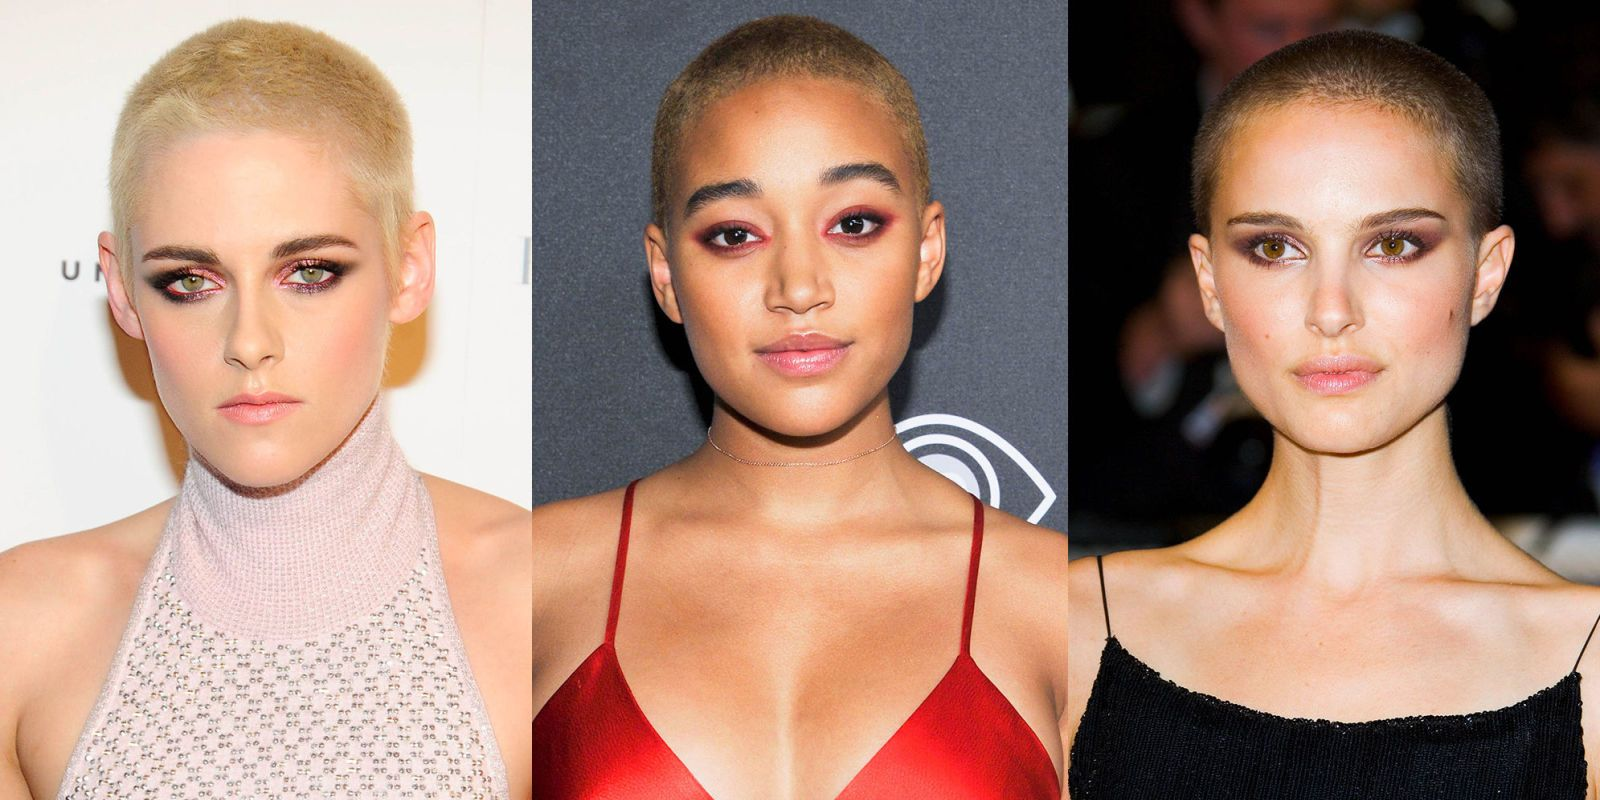 Pictures of women with shaved heads